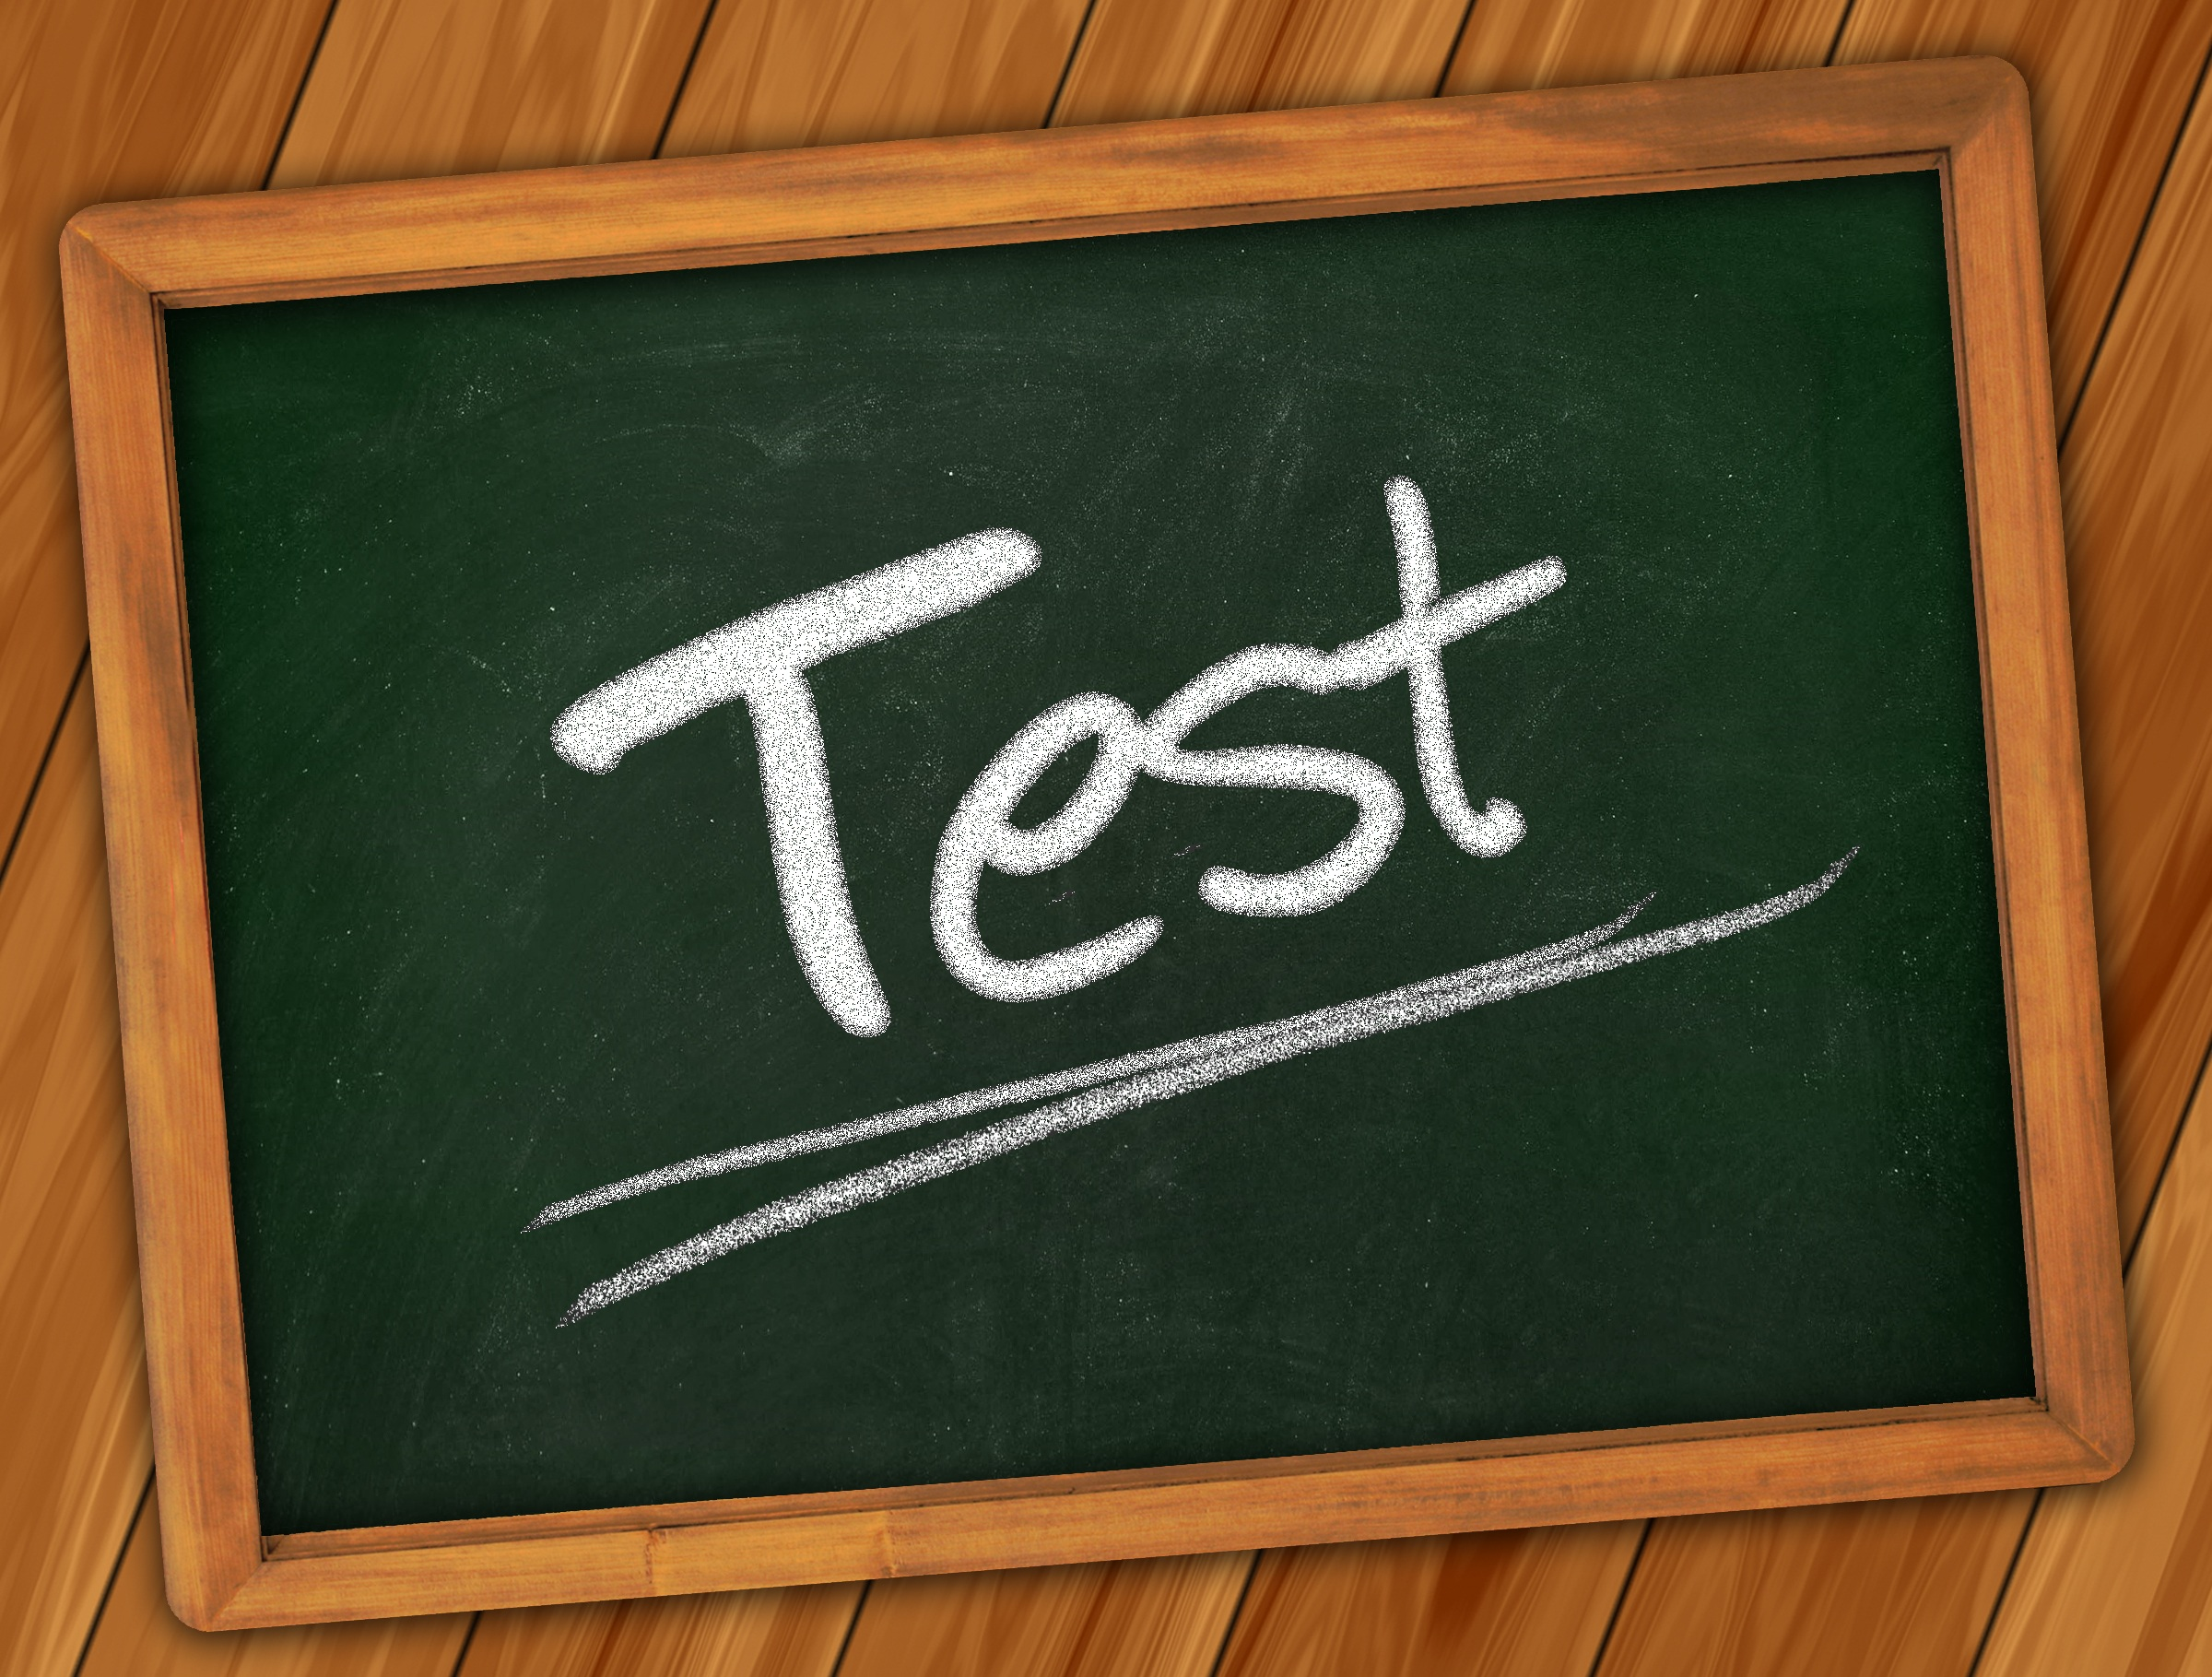 Intelligentieonderzoek en schooladvies test